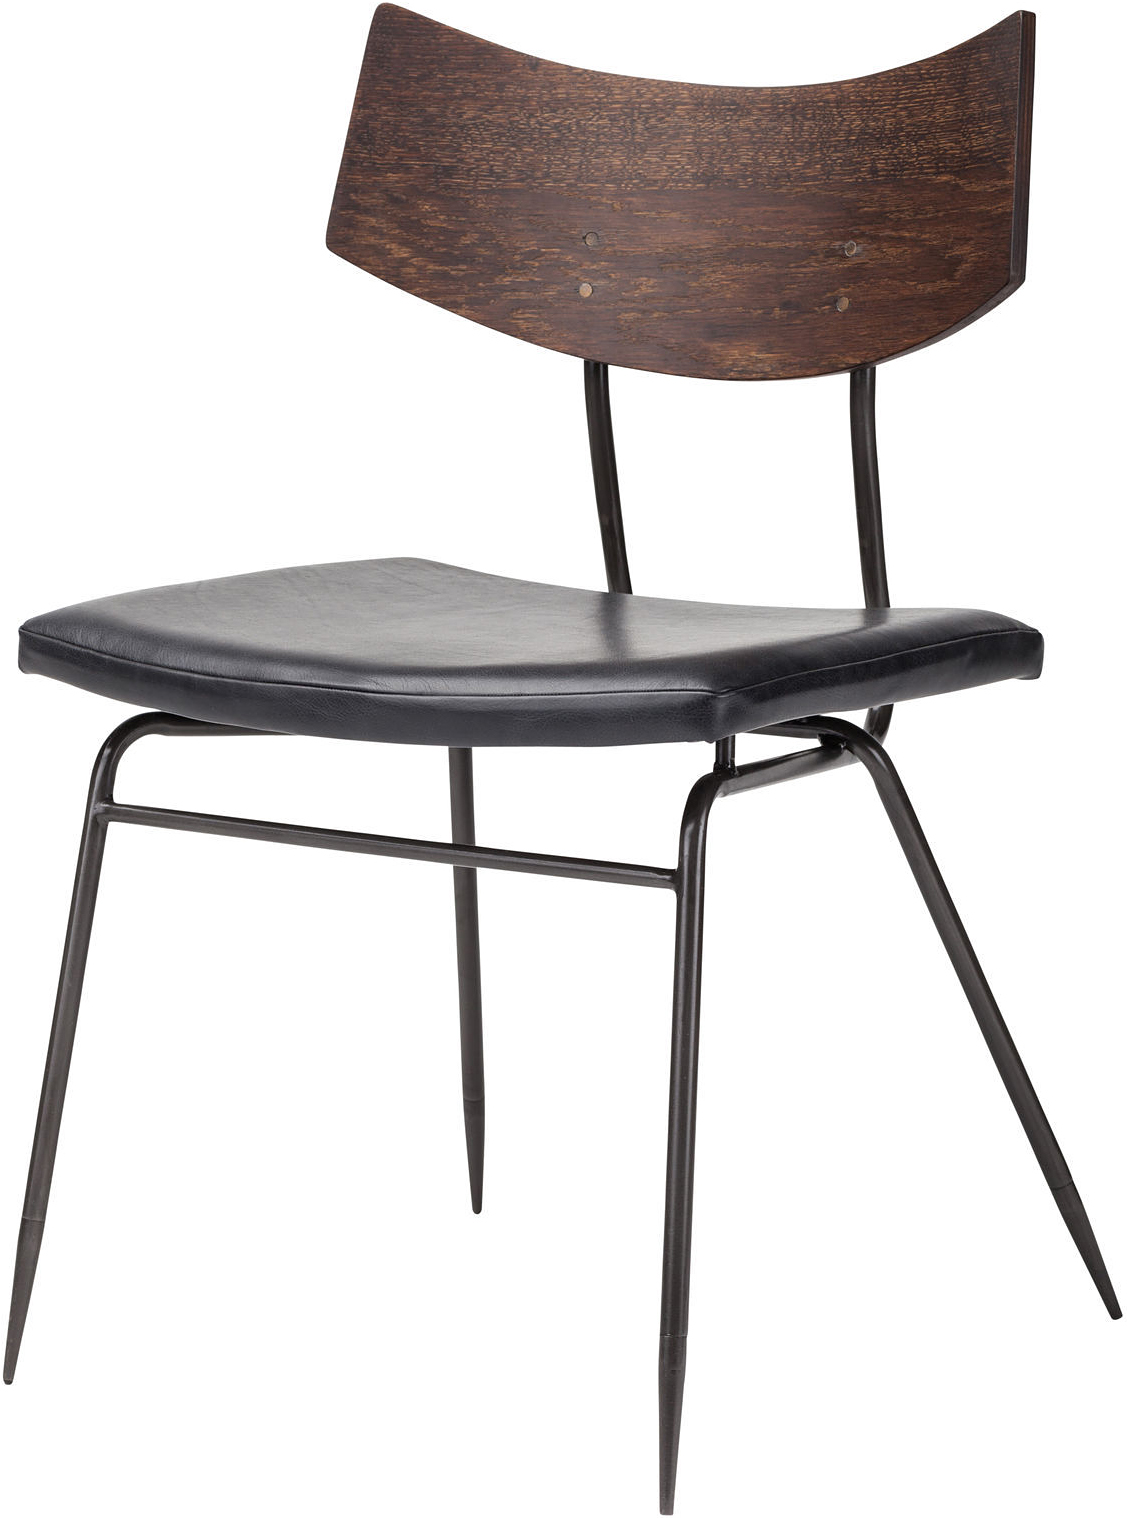 the soli dining chair by nuevo living